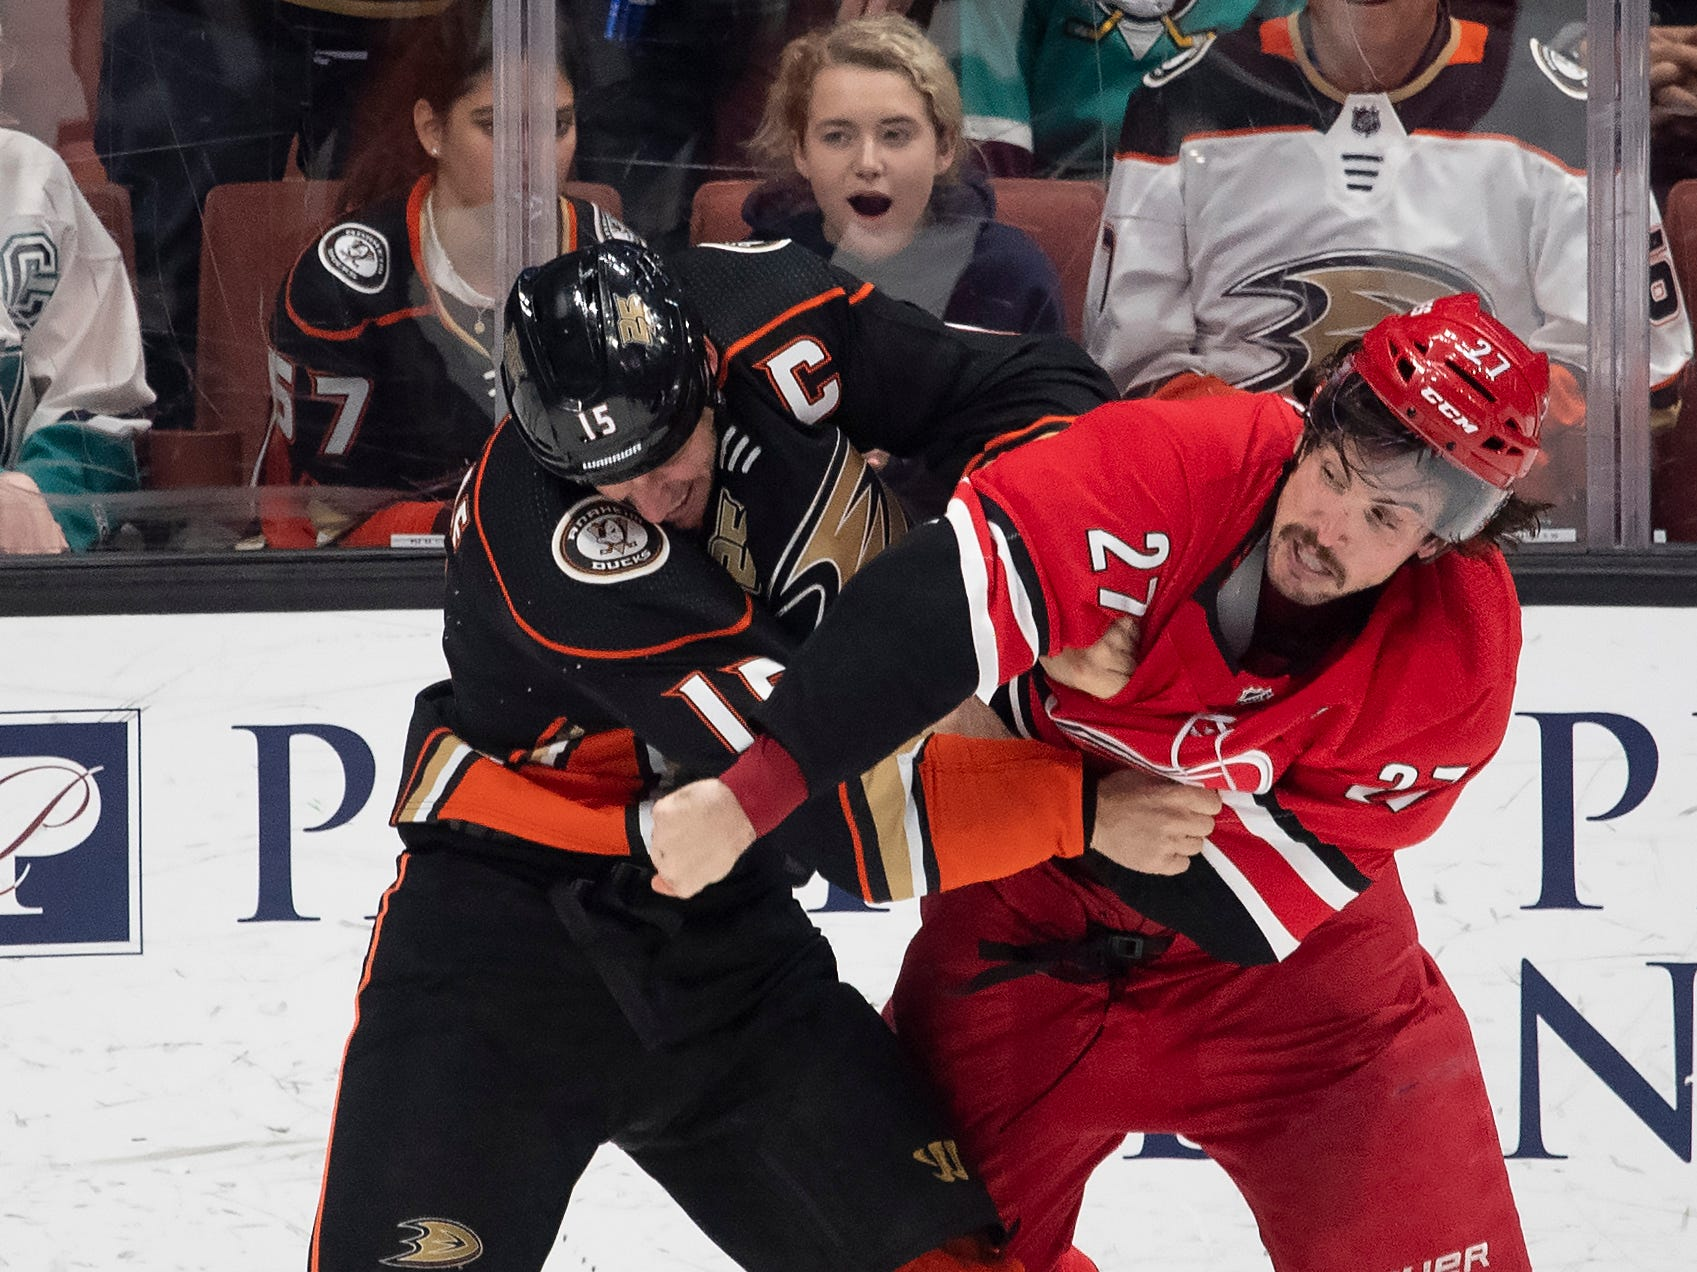 Dec. 7: Anaheim Ducks' Ryan Getzlaf vs. Carolina Hurricanes' Justin Faulk.